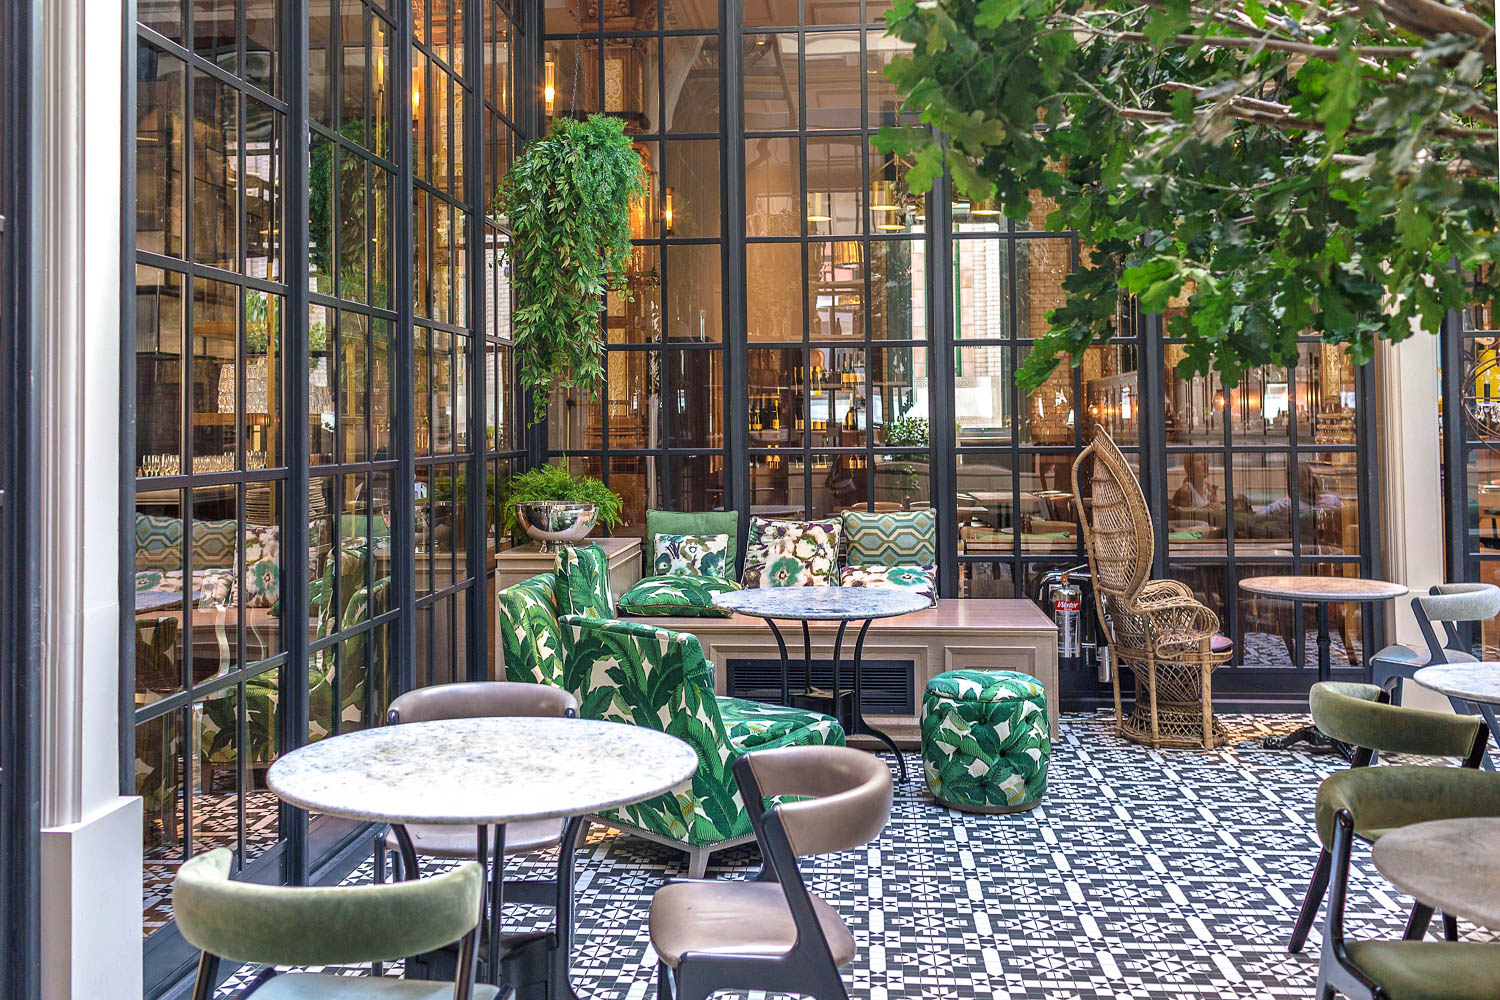 The most Instagrammable spot in Manchester? The winter garden room at the Refuge inside the Principal Manchester